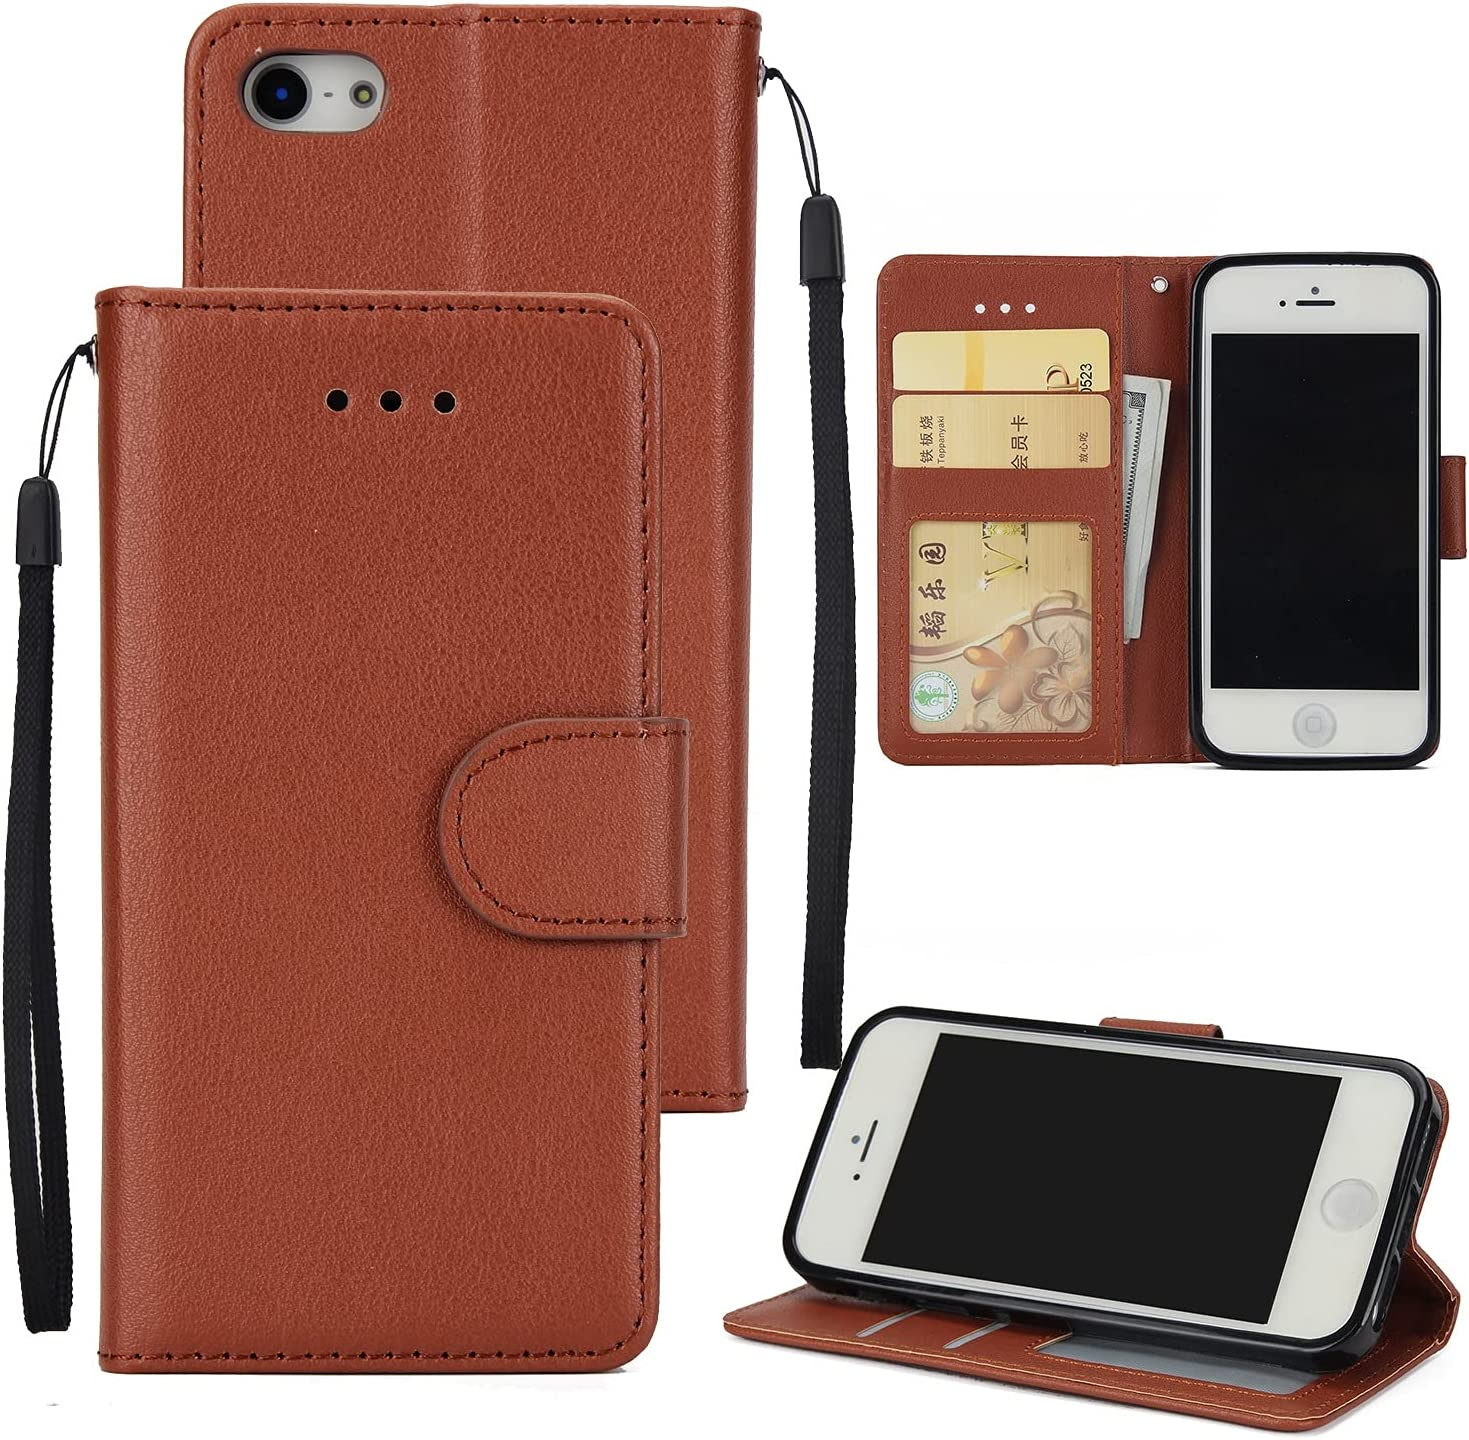 DESHENG Smartphone Protective Phone Flip Cases Wallet Case for iPhone 5S/5SE/5, Premium PU Leather Wallet Case [Wrist Strap] Flip Folio with ID&Credit Card Pockets Phone Bag (Color : Brown)